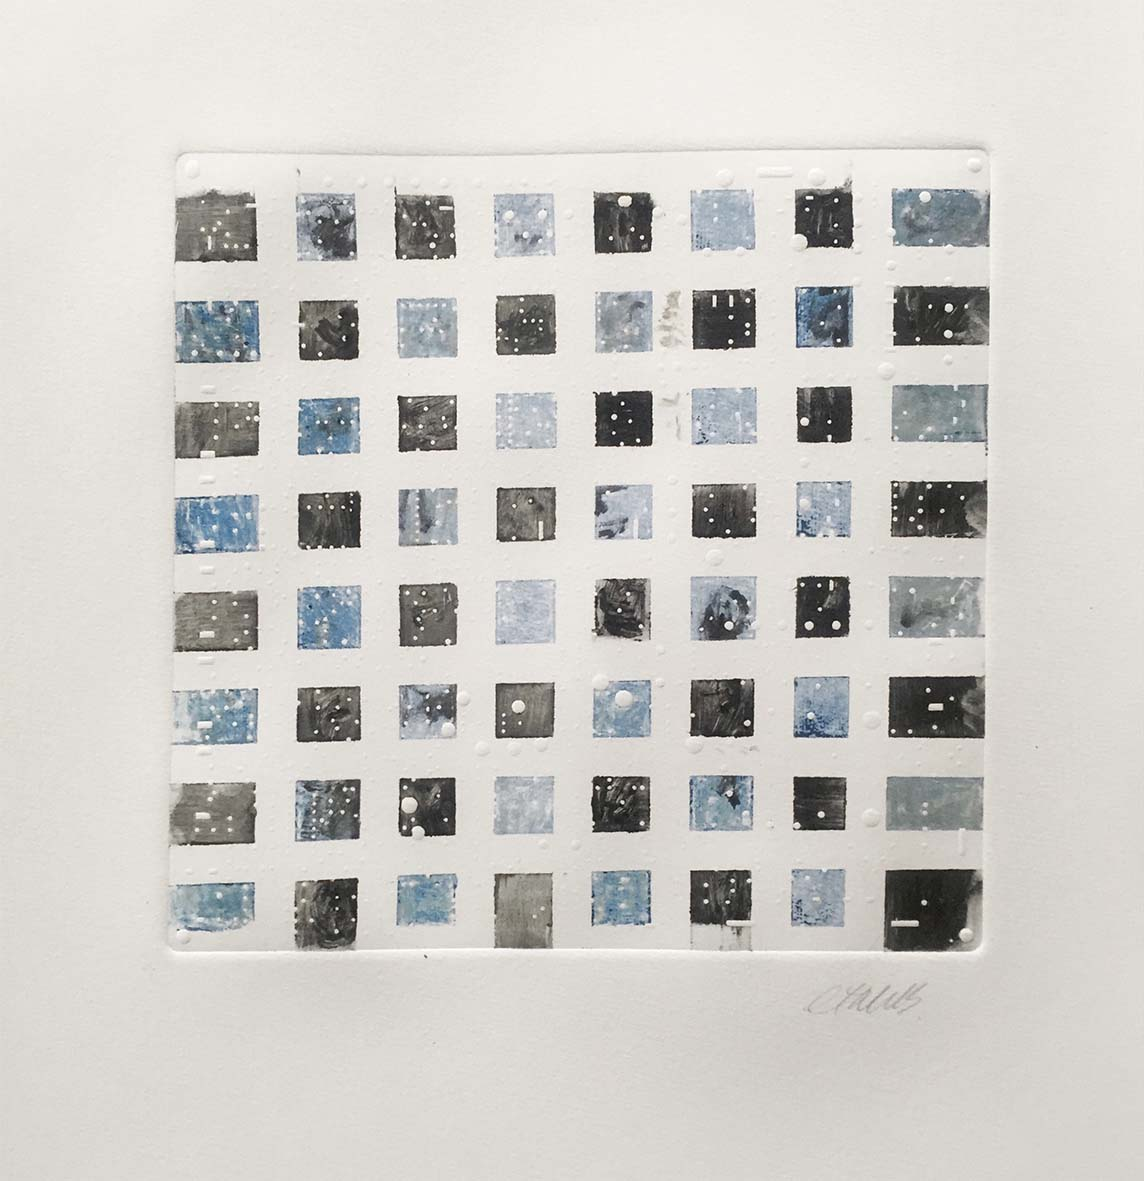 Cheryl Traub-Adler Grid Squares 2019 Monotype ,1of1 52cm x 36cm